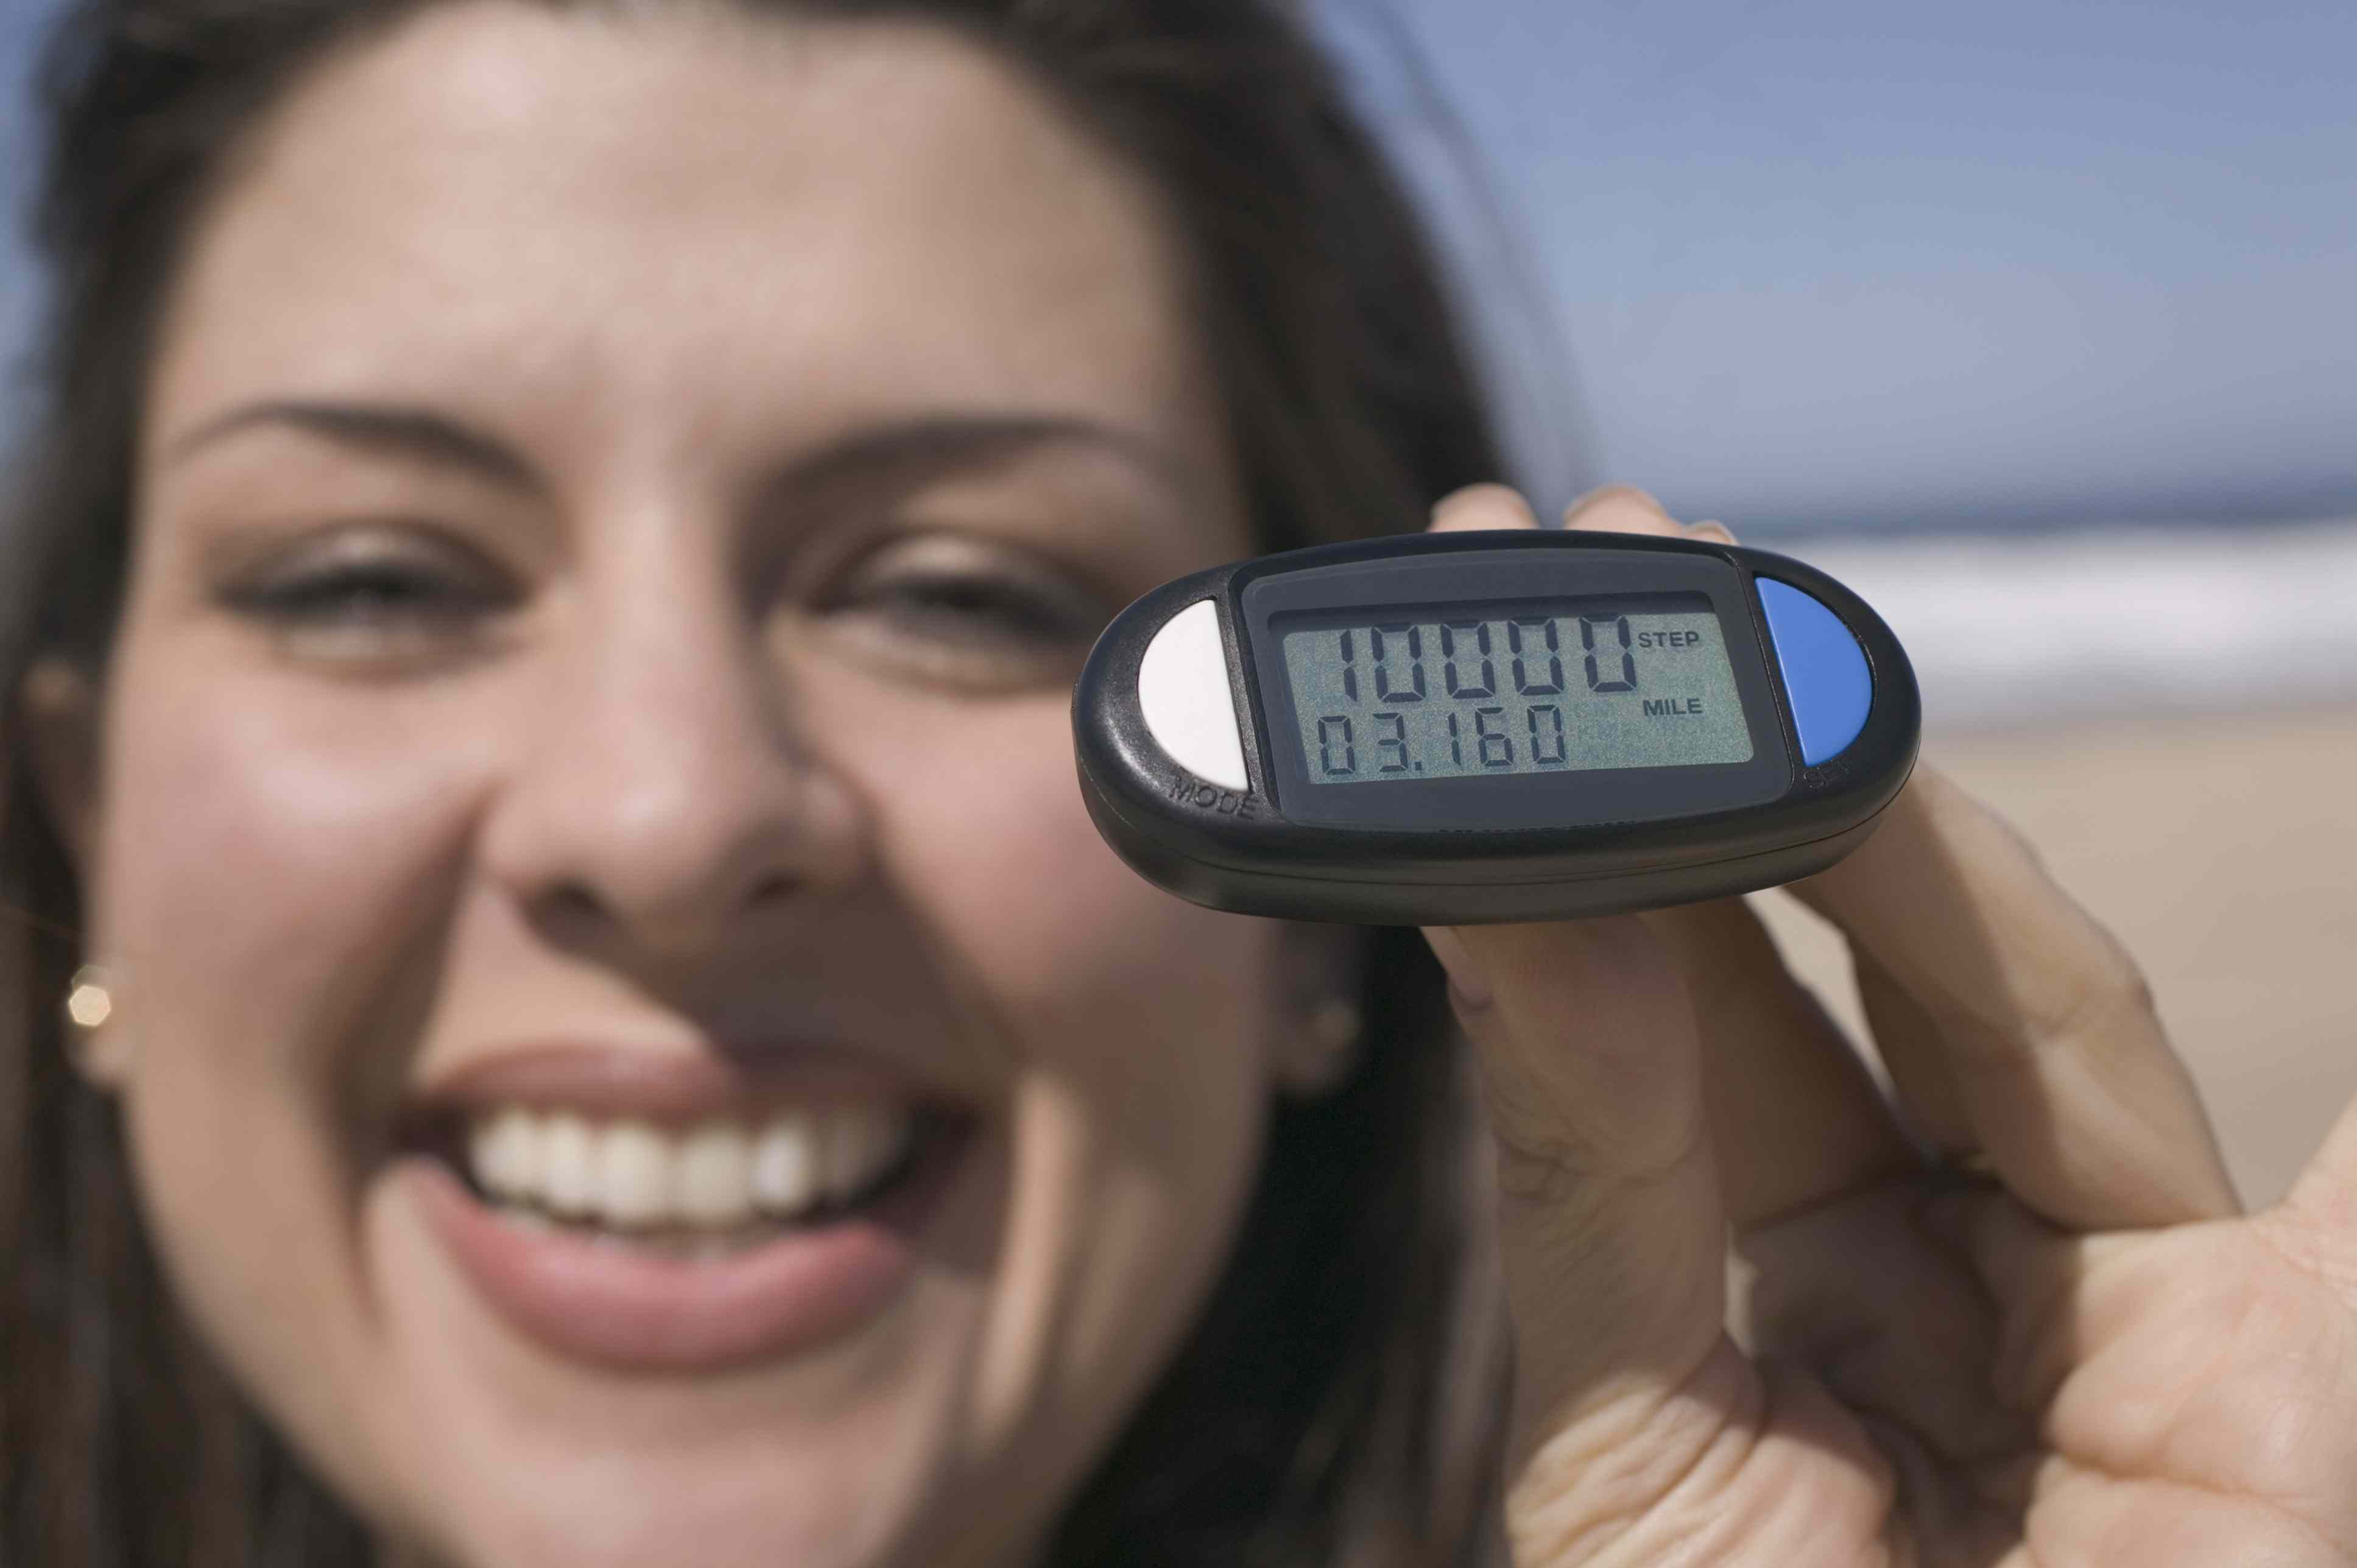 10000 Steps on a Pedometer